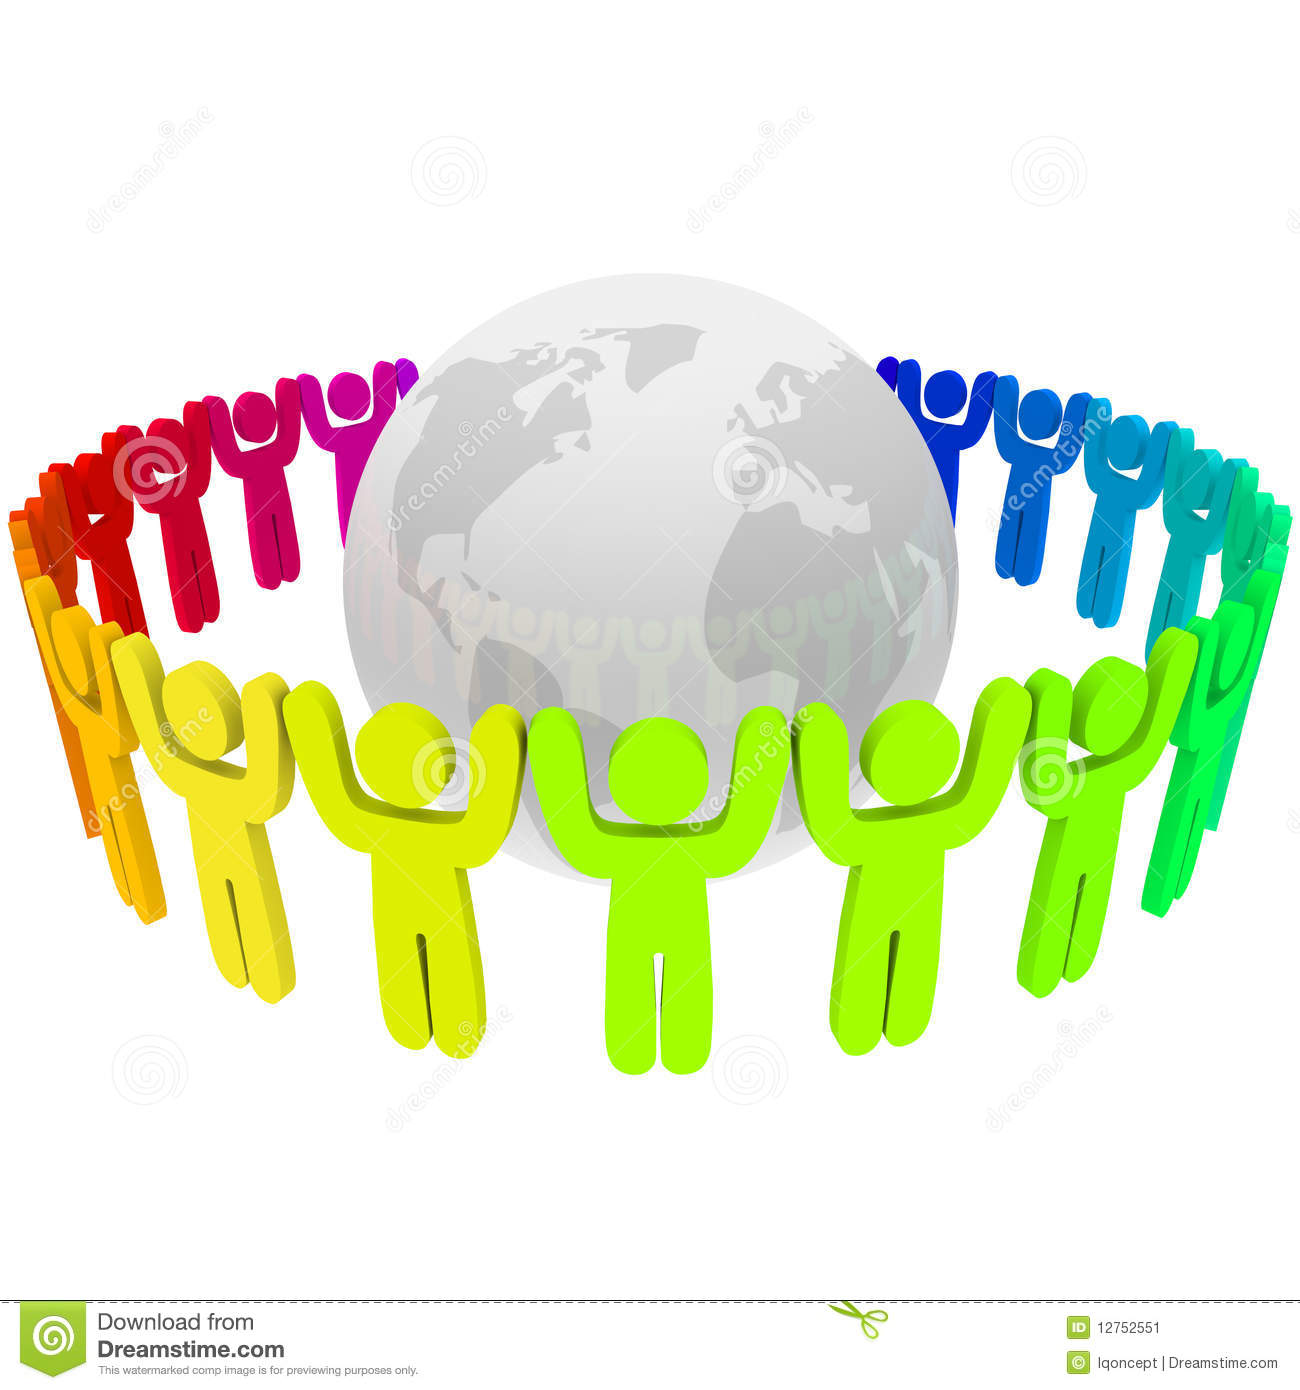 People Of Different Colors Around Earth Stock Image - Image: 12752551